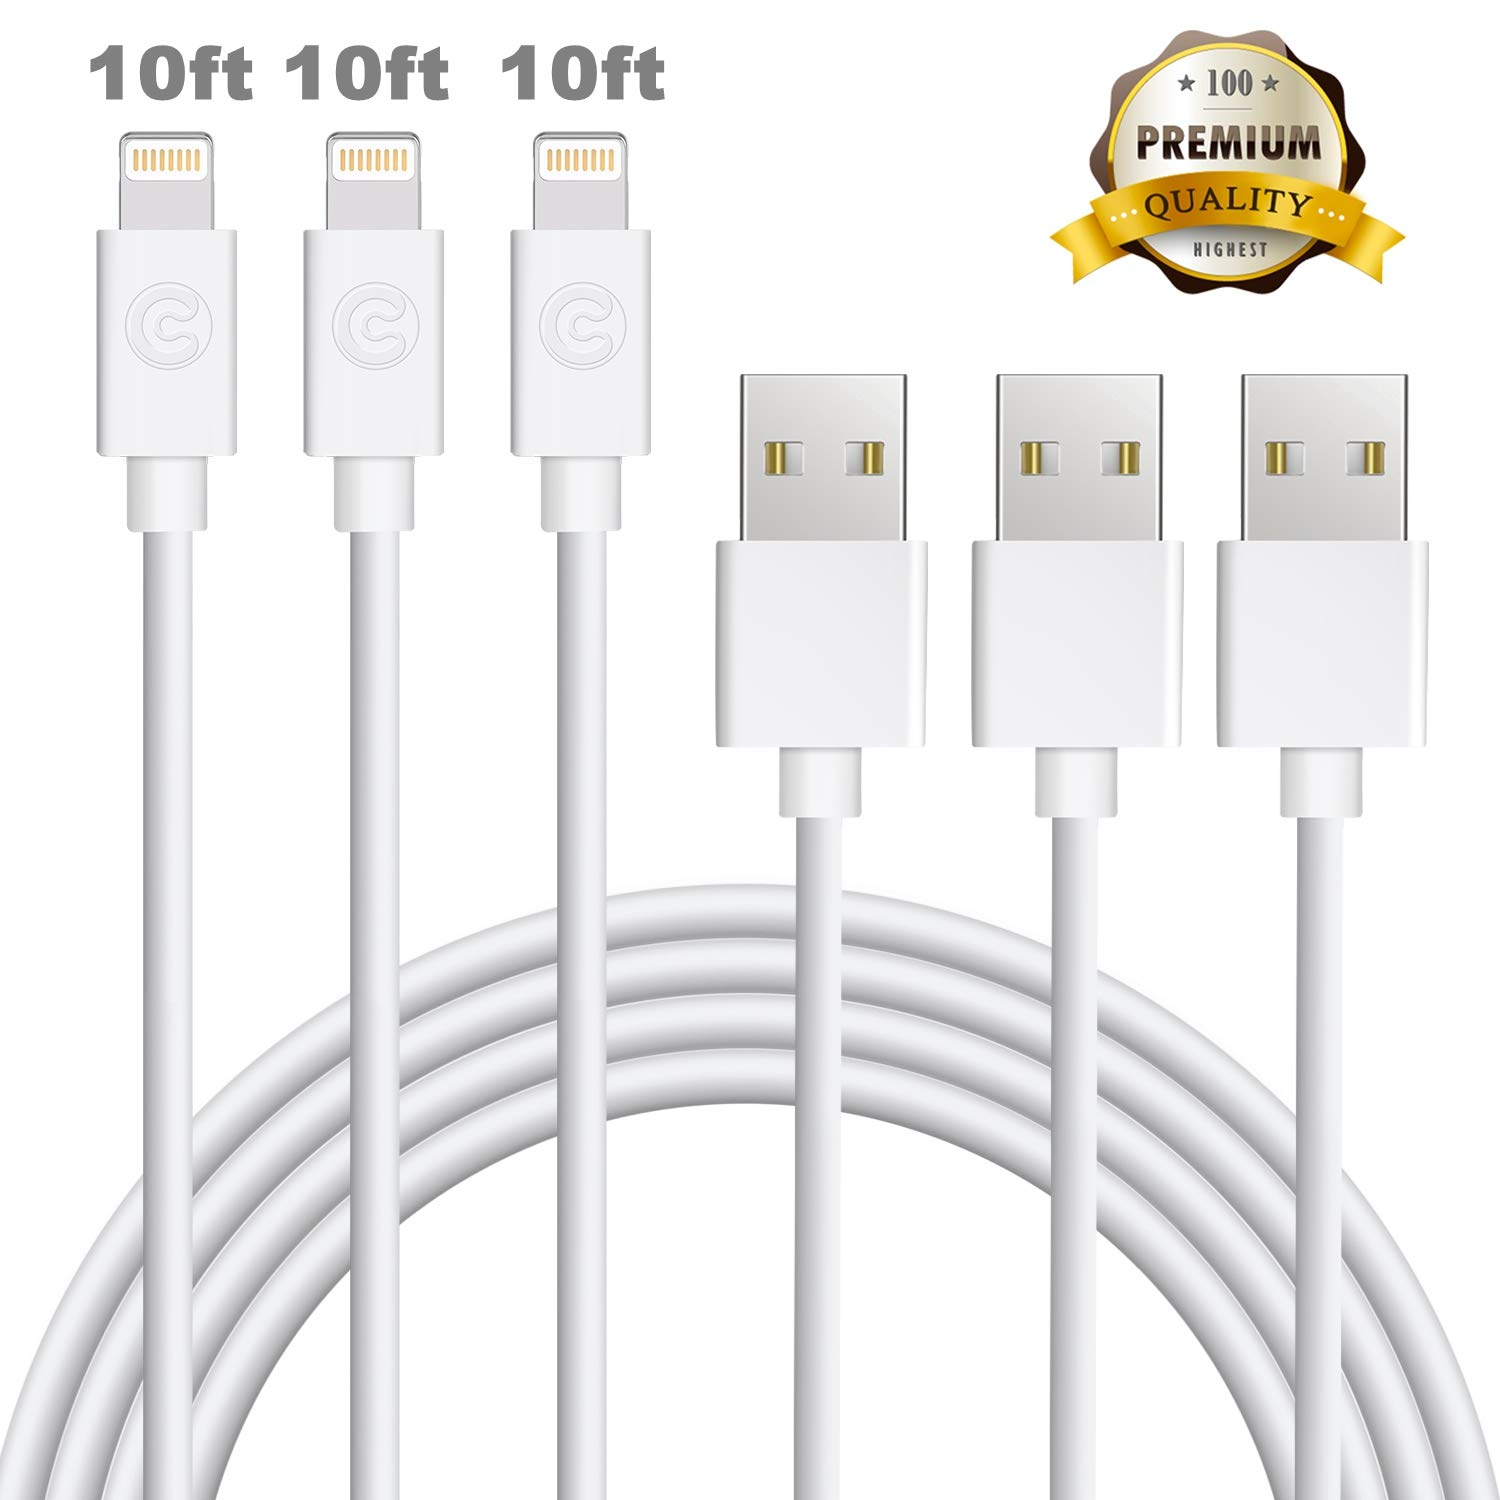 Sundix 3 Pack 10ft Phone Charging Cable Extra Long Phone Cable 8 8 Plus X 7 7Plus 6 6Plus 5 5s 5c SE